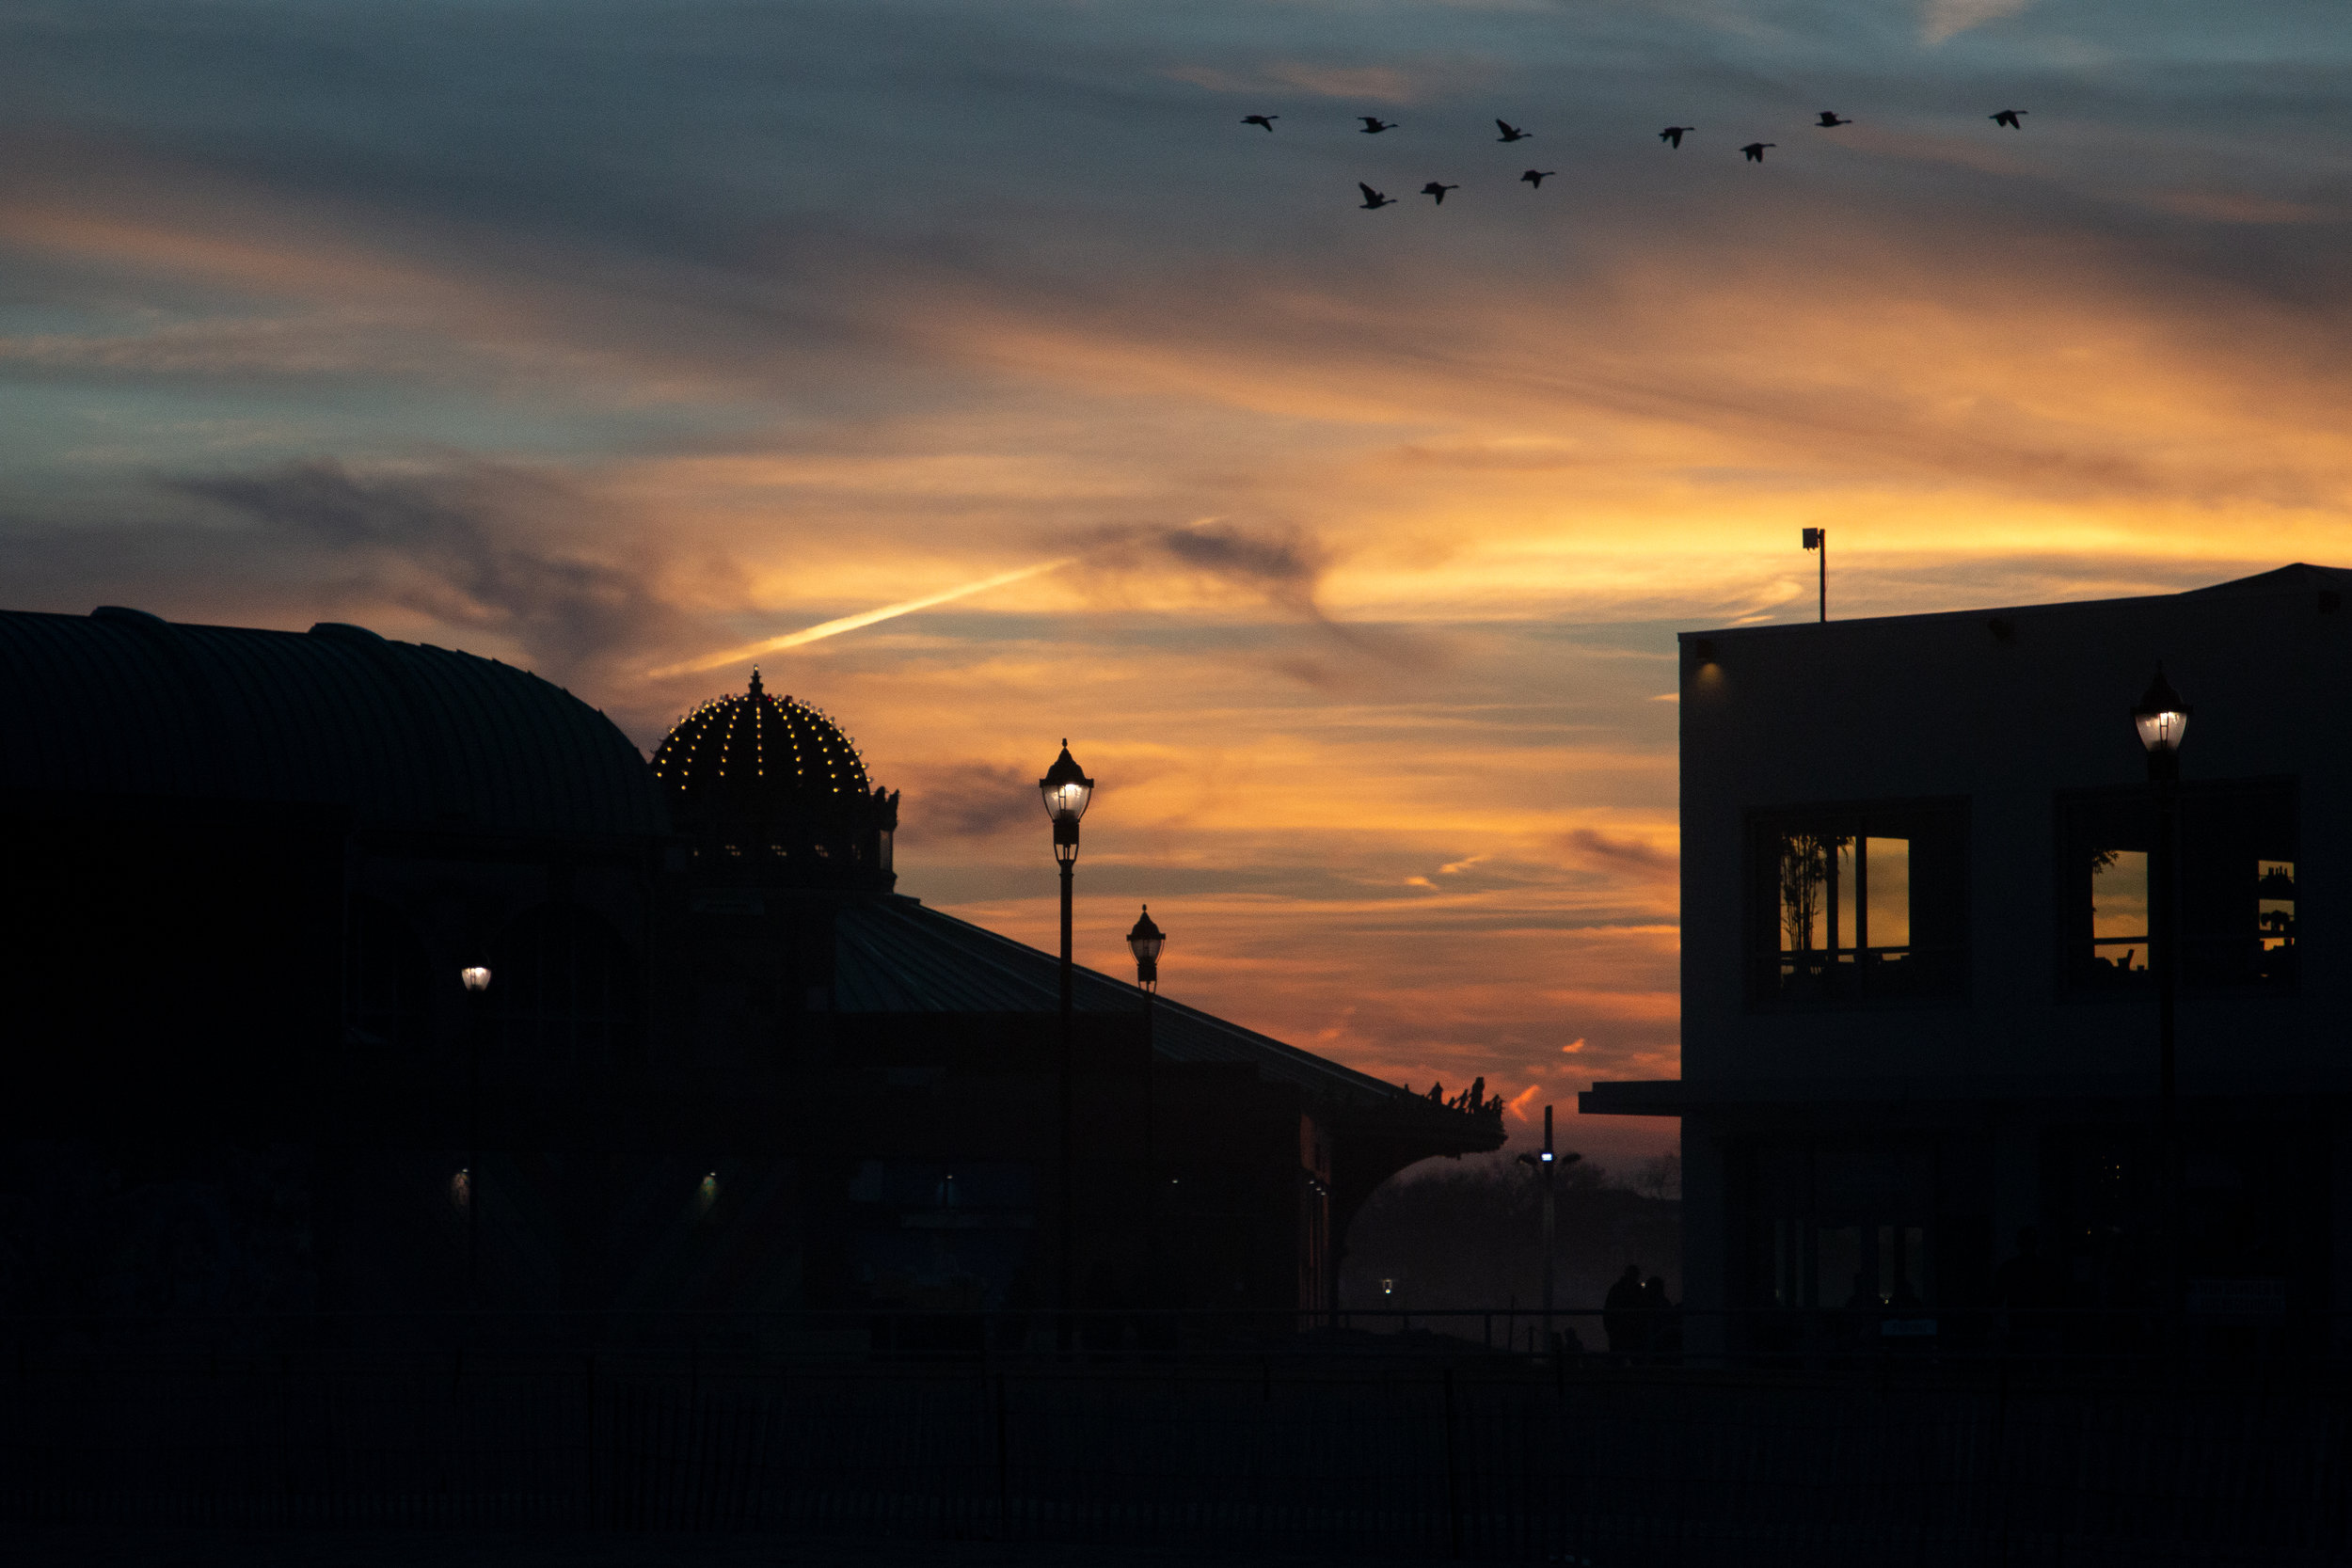 Sunset in Asbury Park, New Jersey. Photo by Kayleigh Ann Archbold.